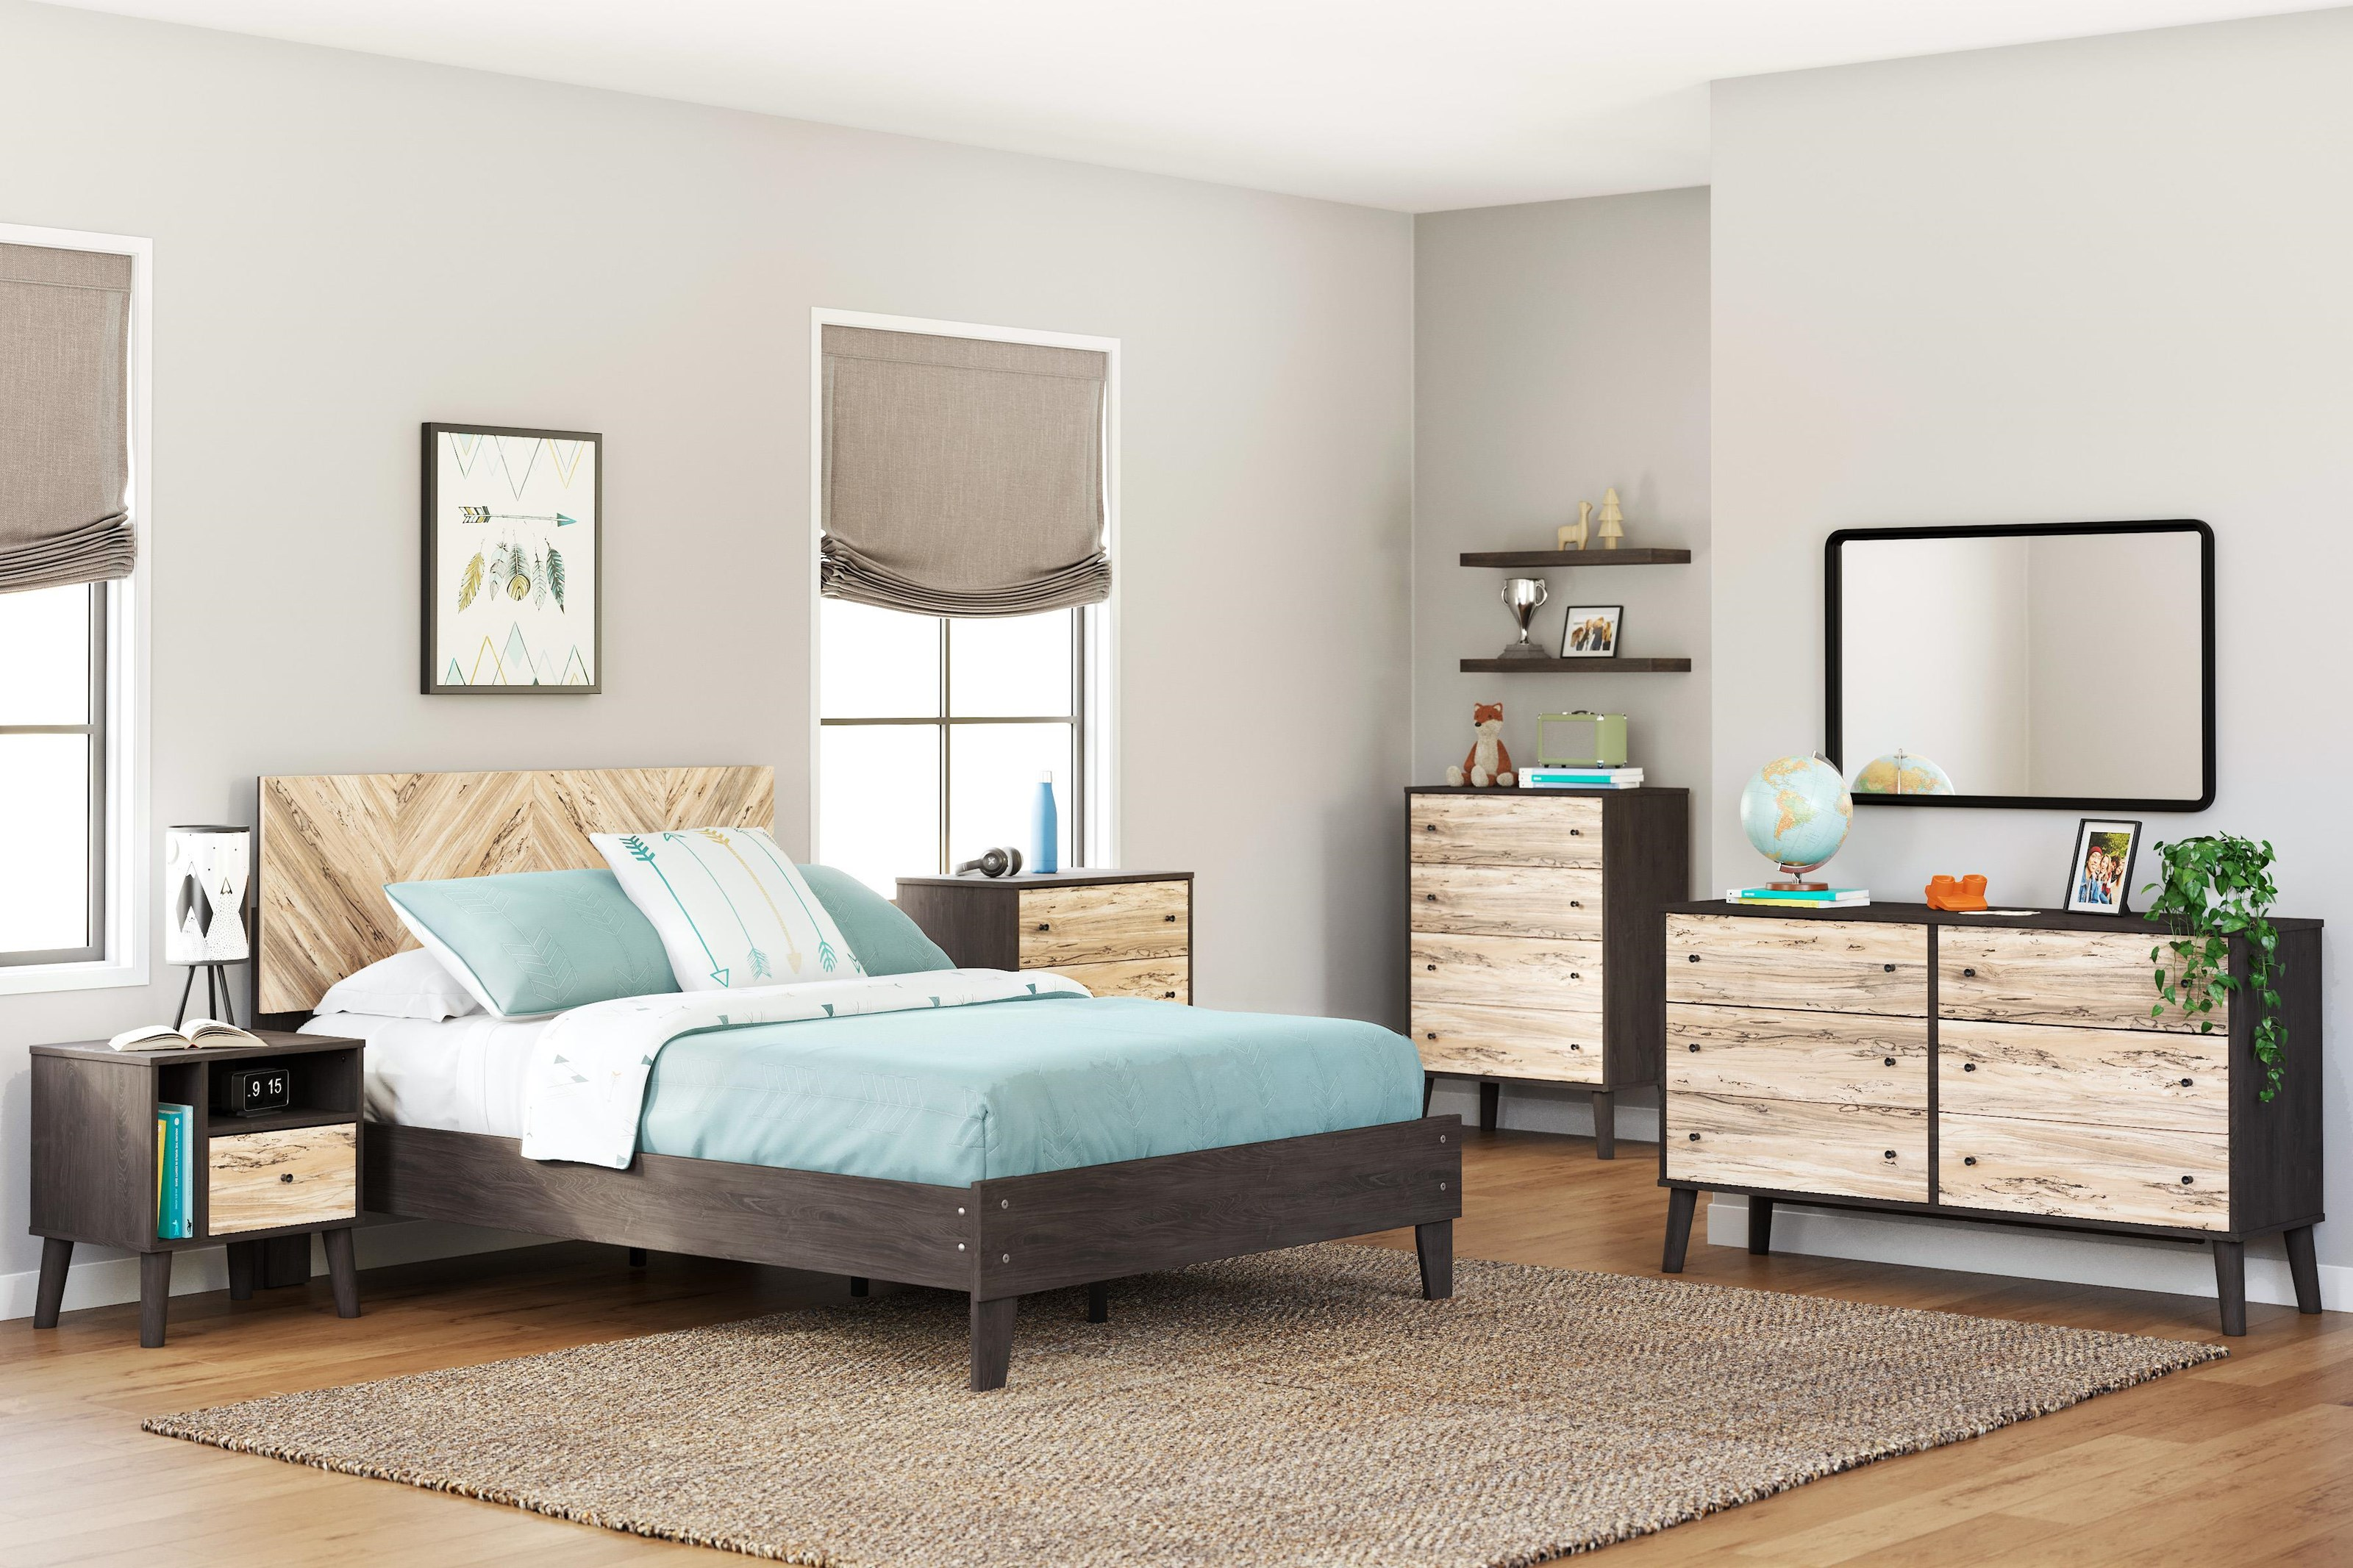 Piperton 3 Piece Full Bedroom Set by Signature Design by Ashley at Sam Levitz Outlet